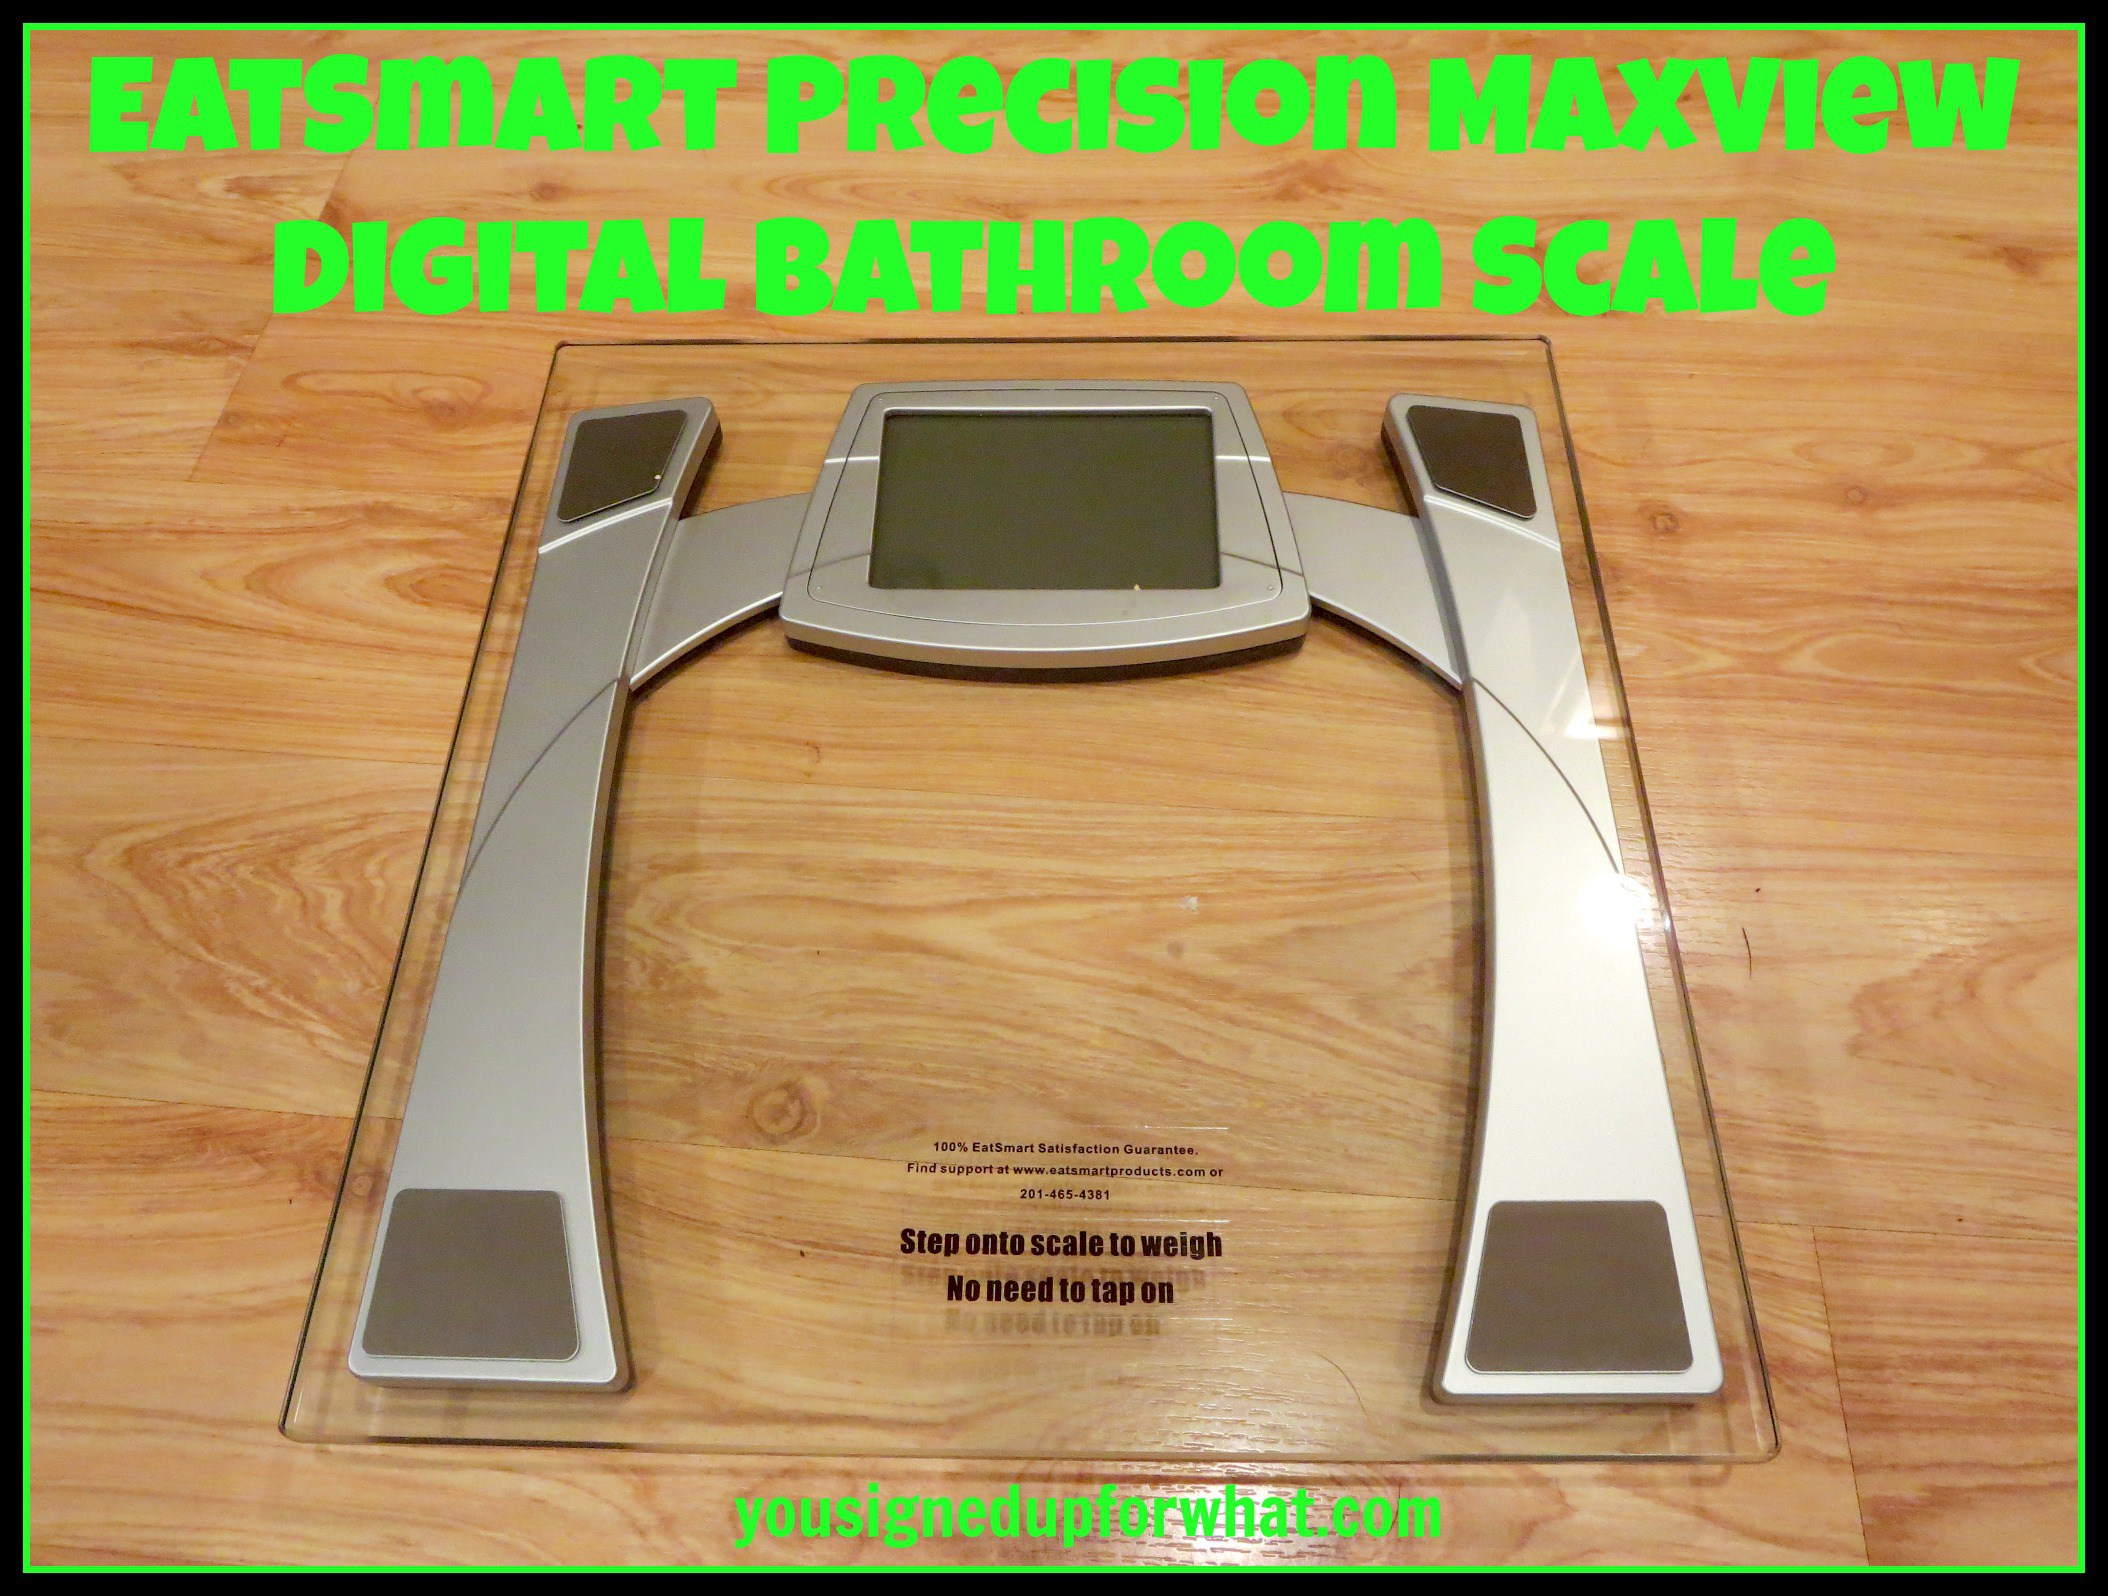 Bed bath and beyond bathroom scales - Bath Scales At Target Scales Bed Bath And Beyond Eatsmart Precision Digital Bathroom Scale